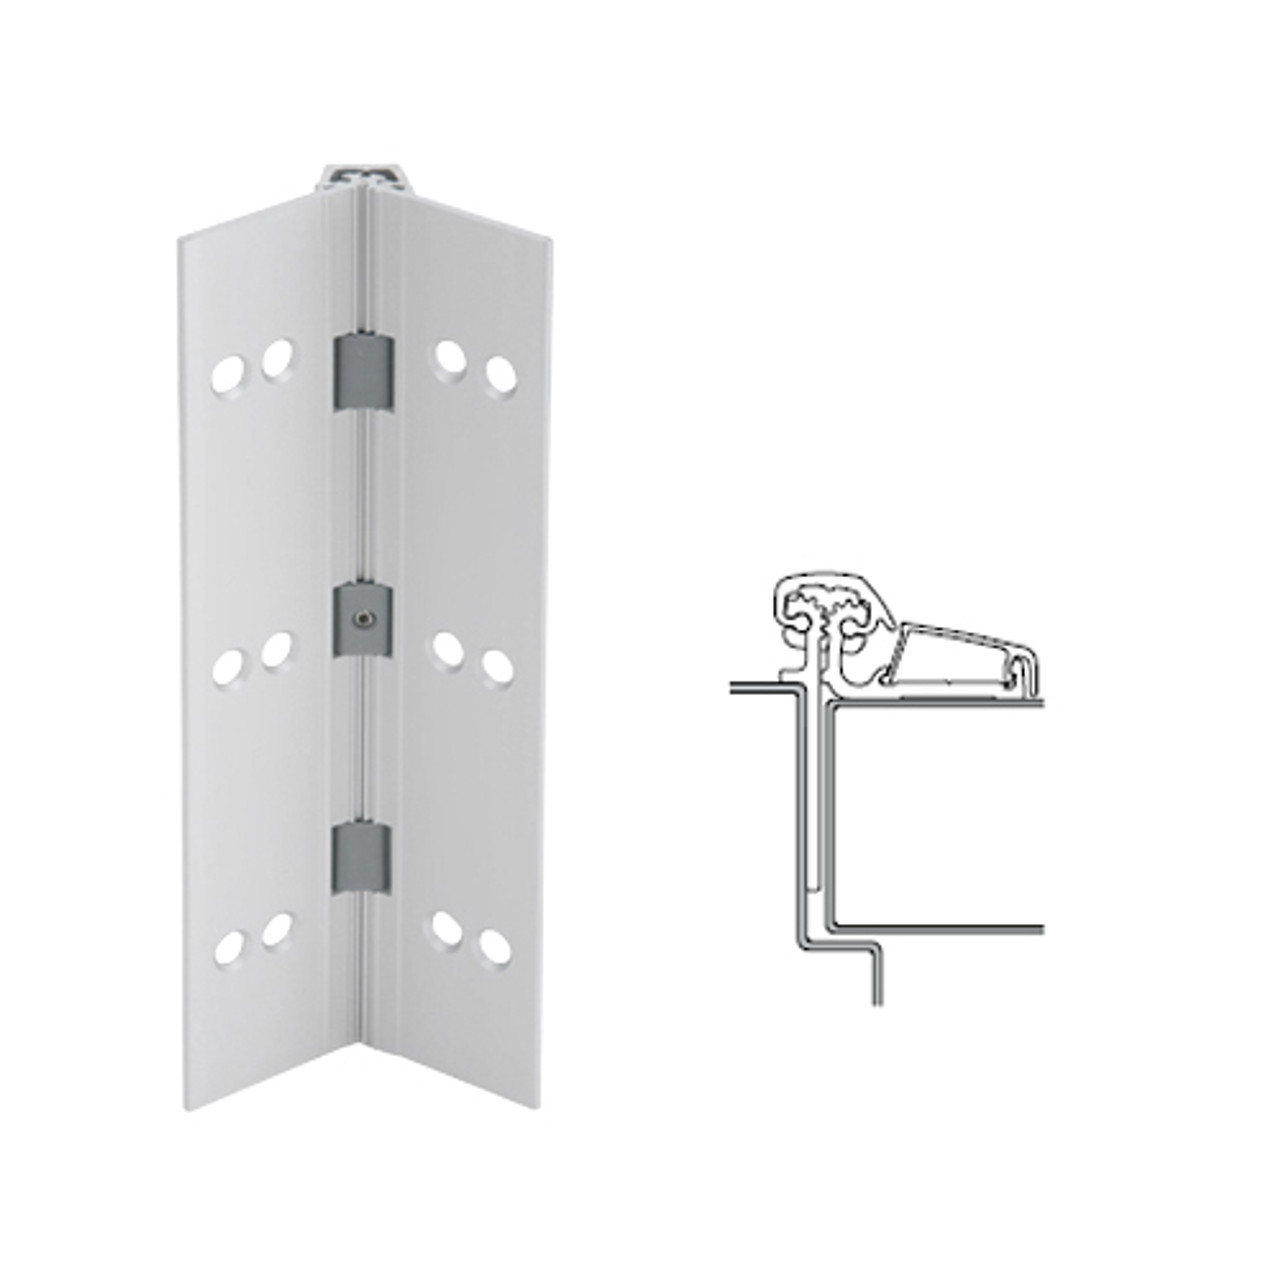 053XY-US28-83-SECWDWD IVES Adjustable Half Surface Continuous Geared Hinges with Security Screws - Hex Pin Drive in Satin Aluminum